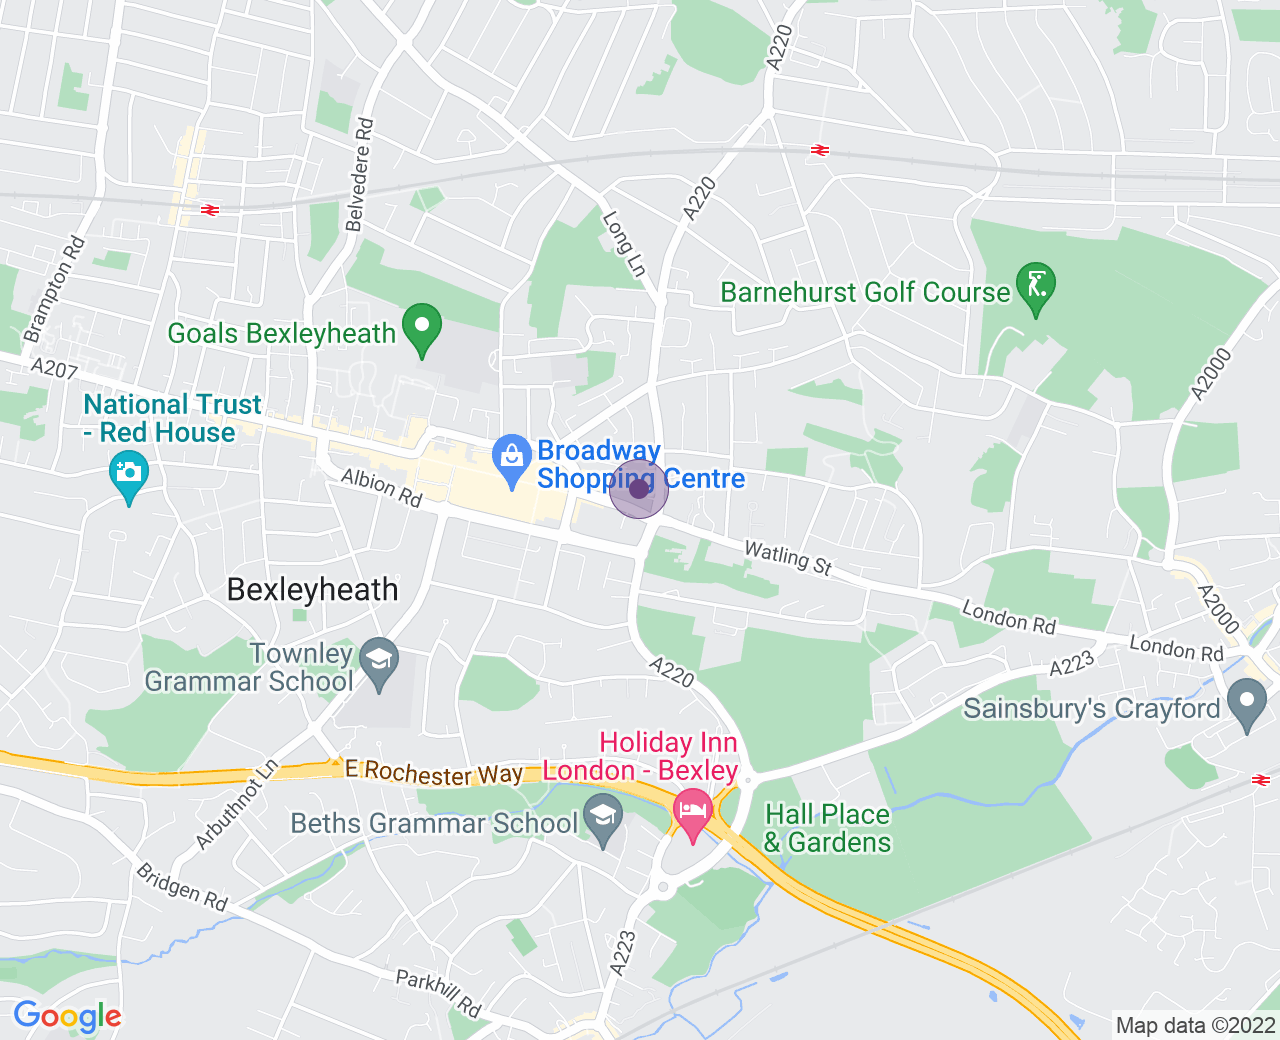 Location of (Bexleyheath Marriott Hotel)